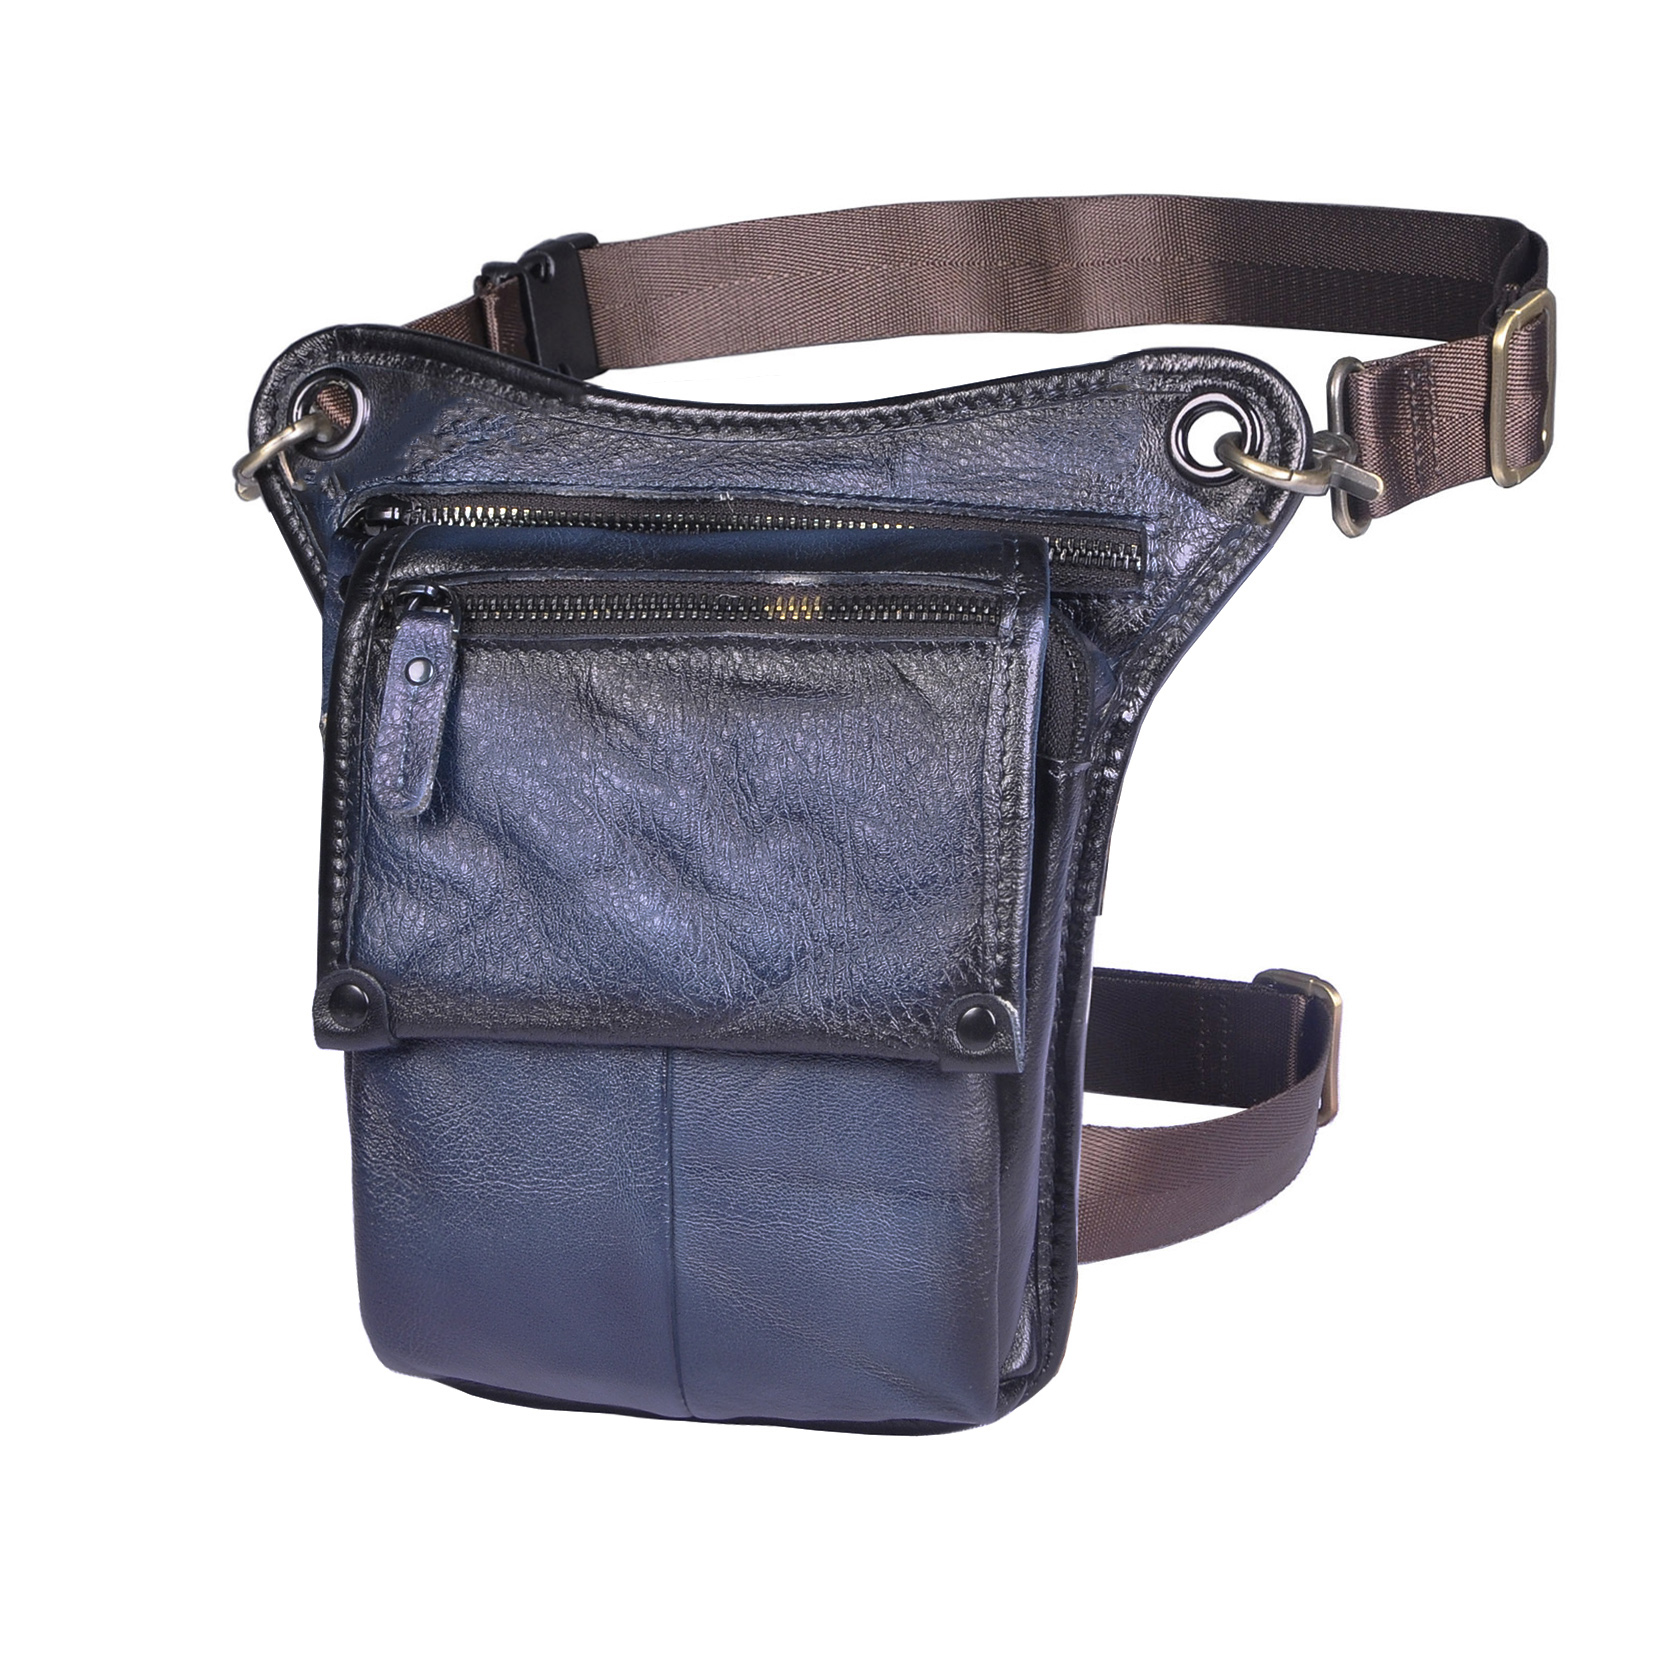 Quality Real Leather Men Multi-function Design Small Messenger Bag Fashion Travel Fanny Belt Waist Pack Drop Leg Bag Male 211-4